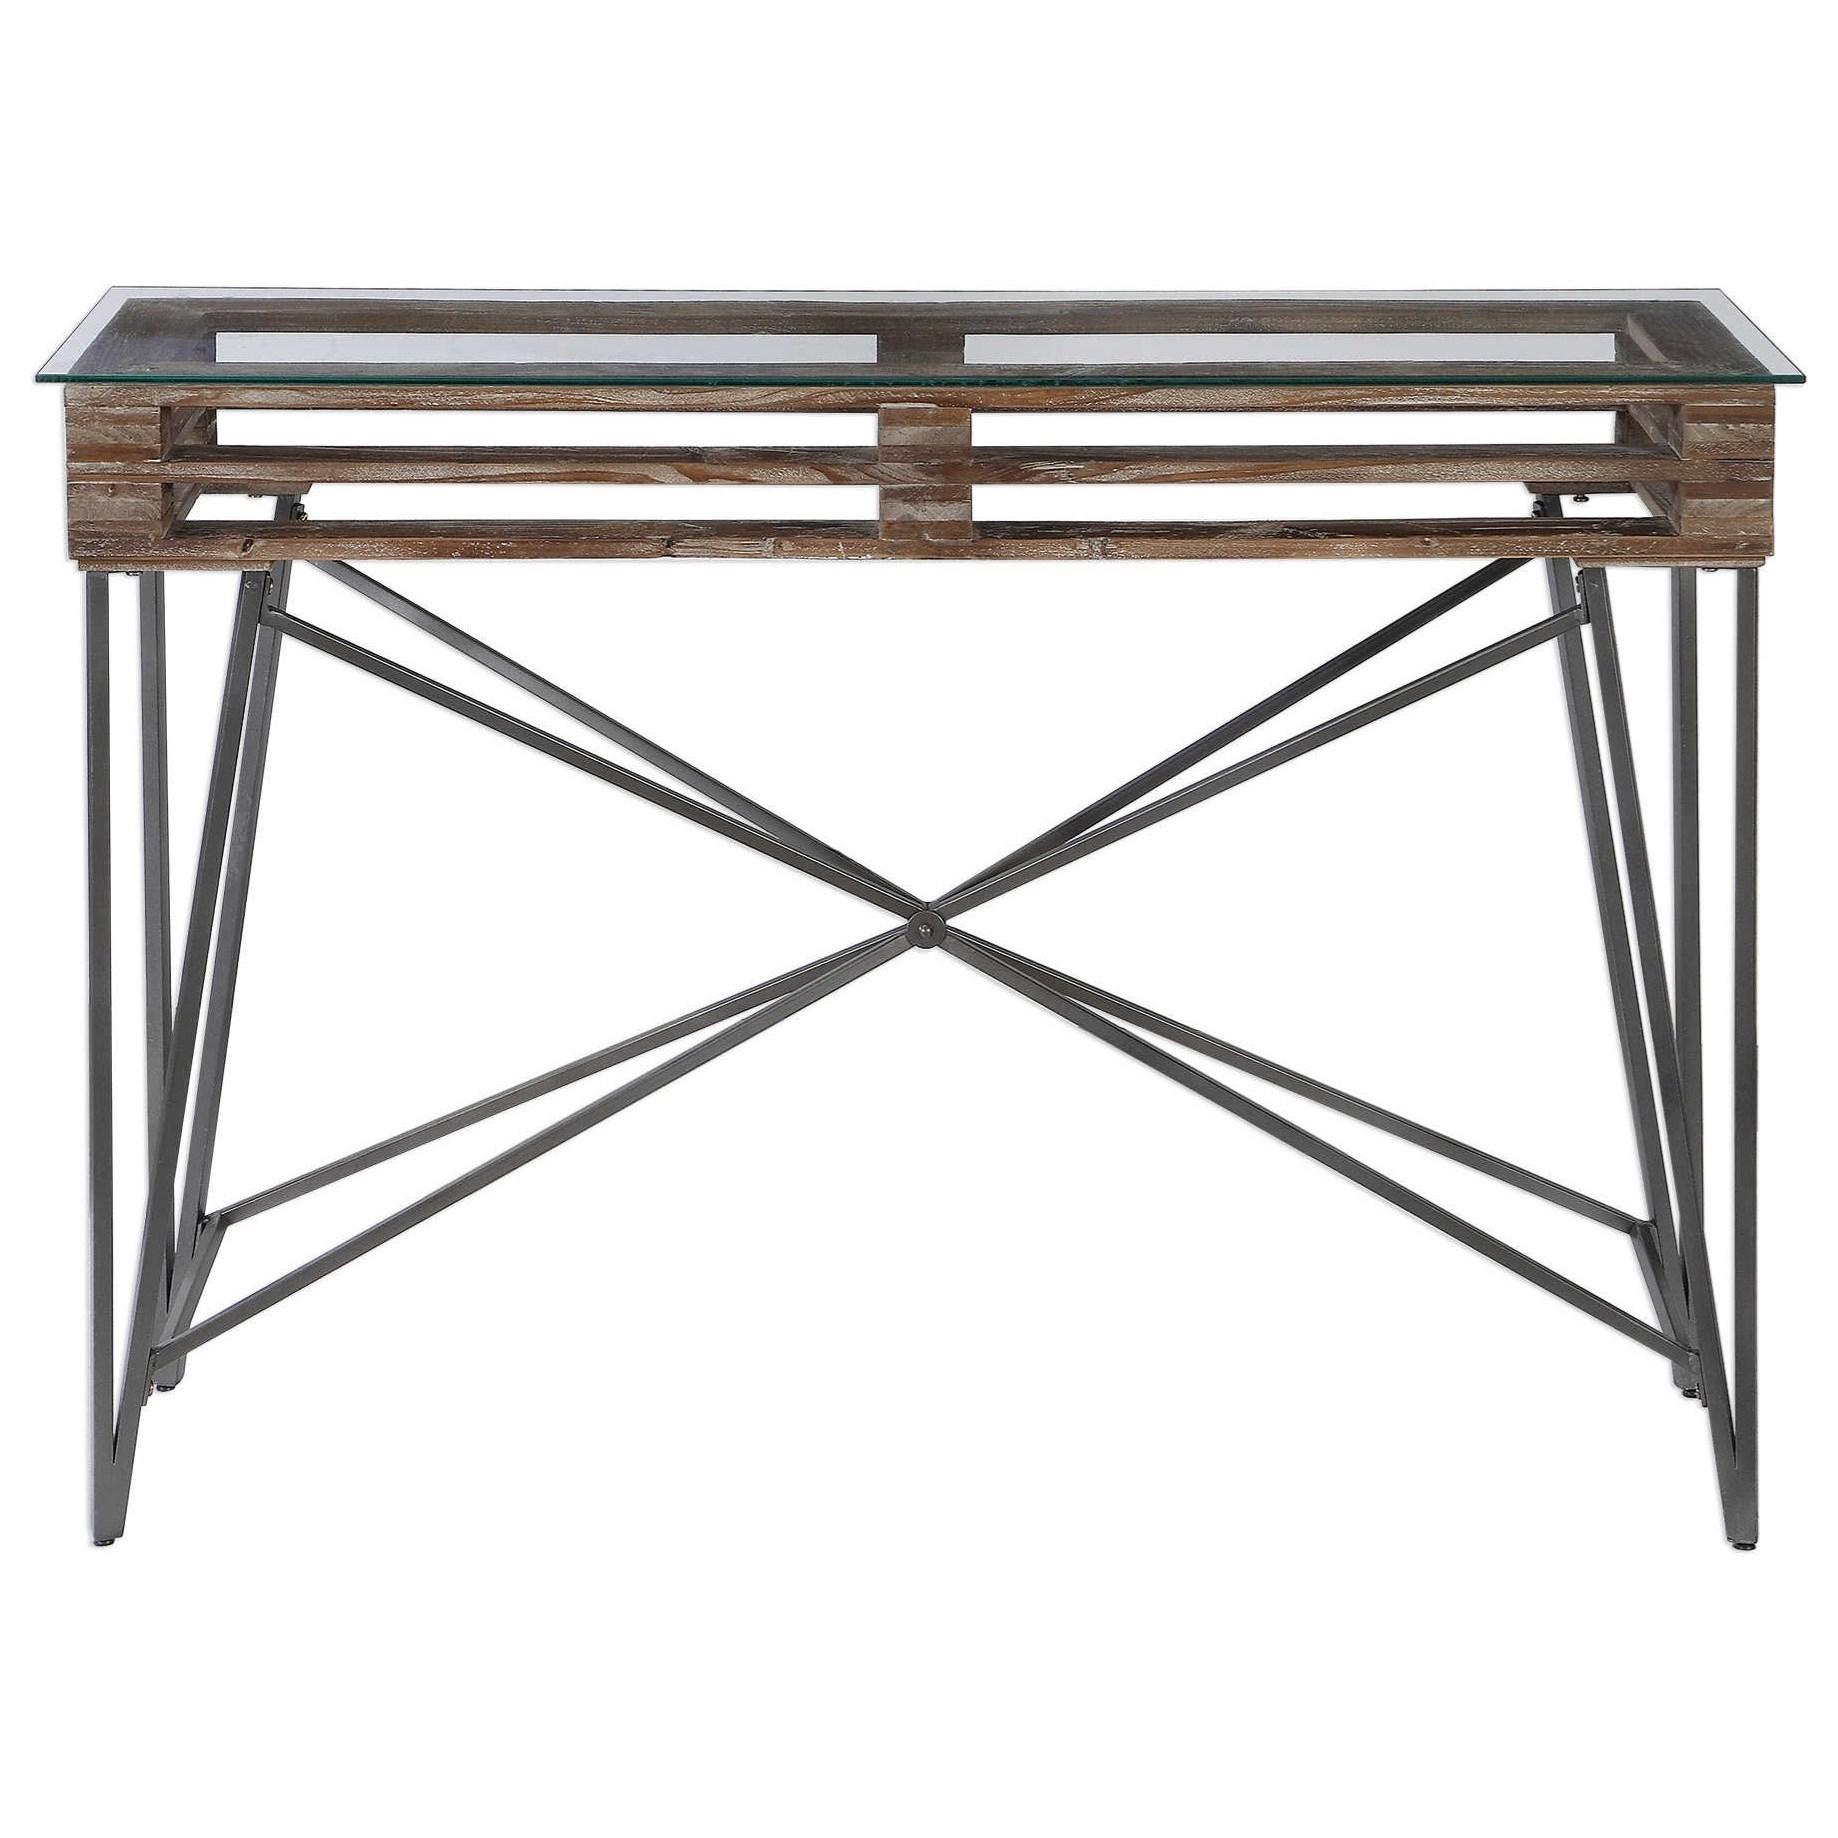 Accent Furniture - Occasional Tables Ryne Industrial Console Table by Uttermost at Mueller Furniture